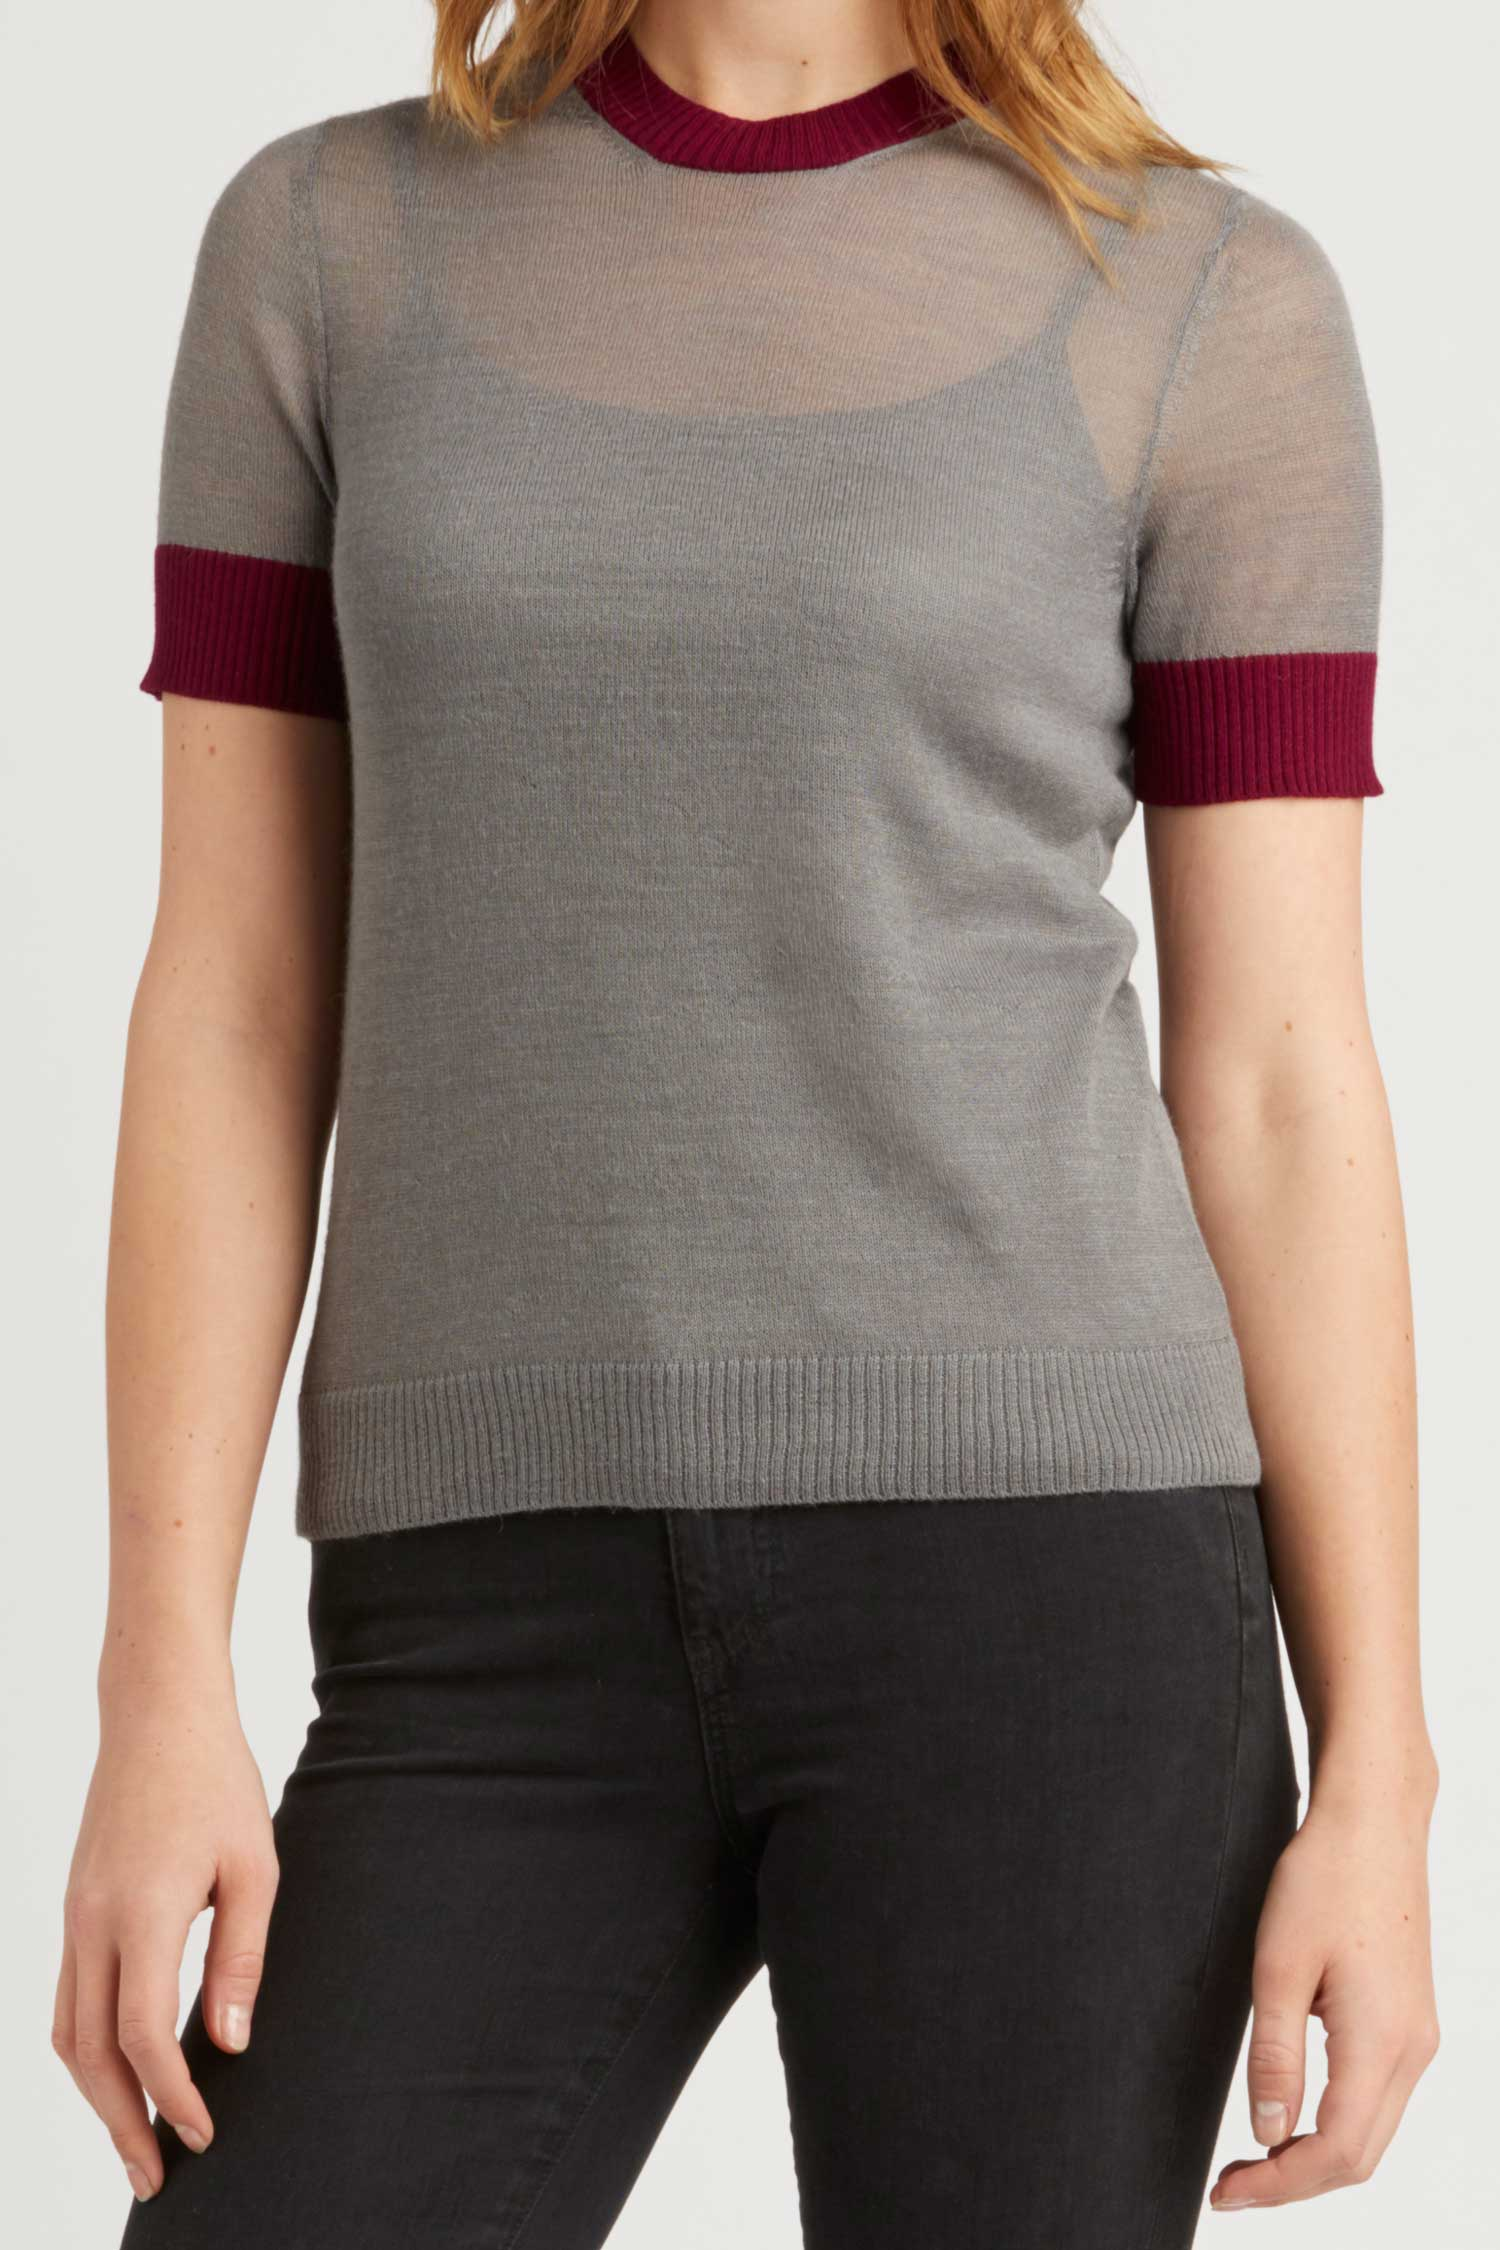 Sheer Alpaca Silk Top - Indigenous